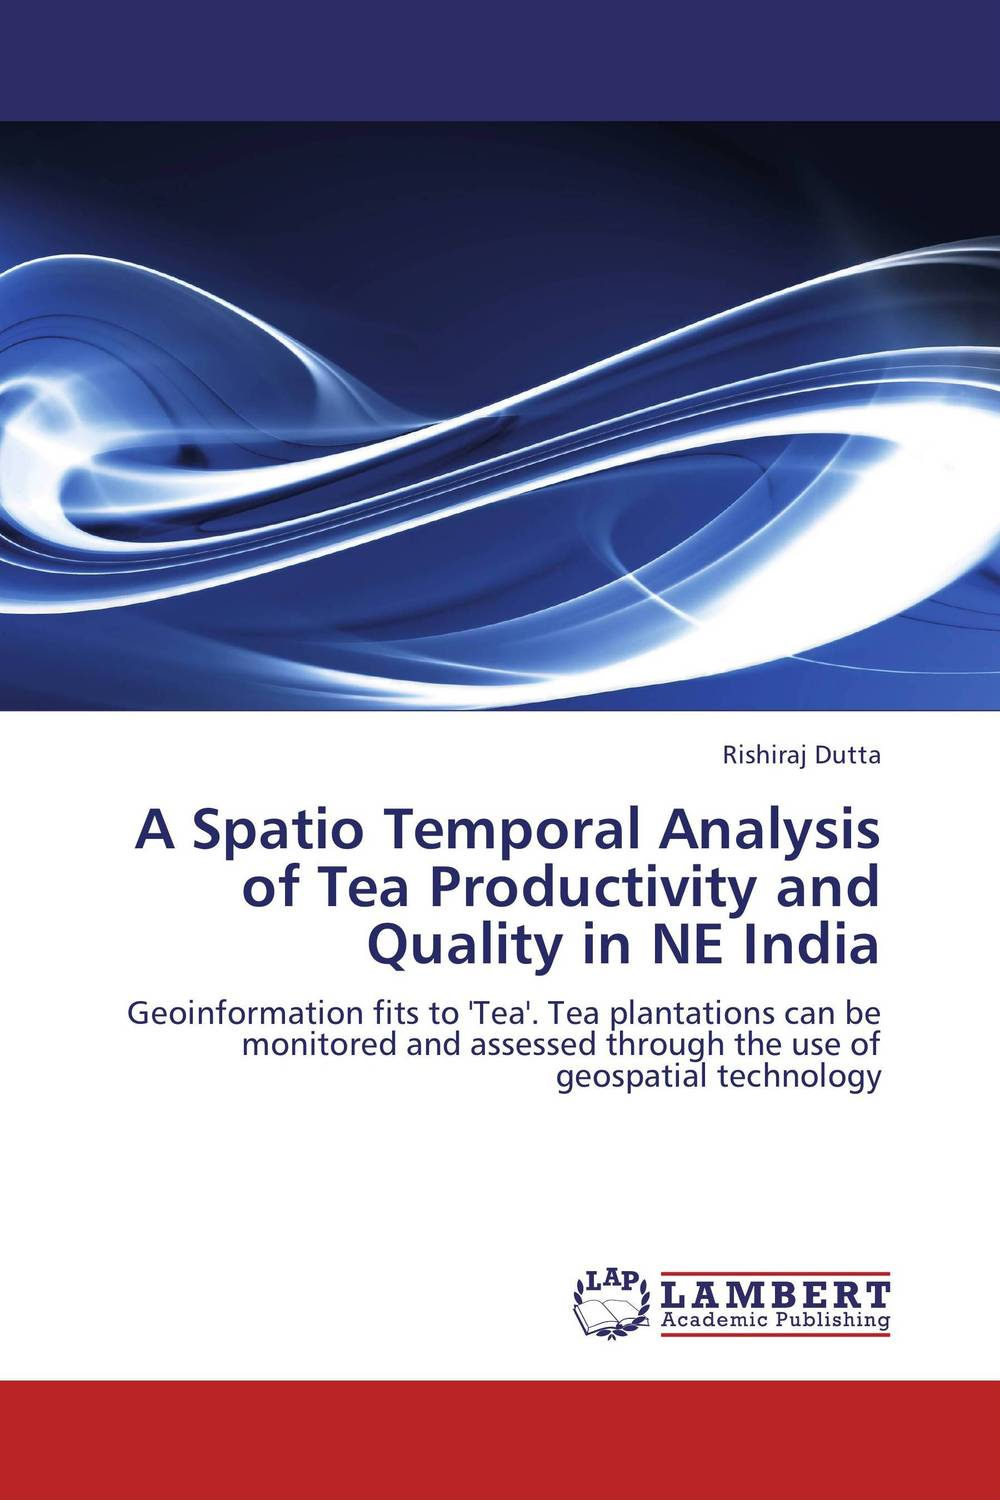 цена на A Spatio Temporal Analysis of Tea Productivity and Quality in NE India